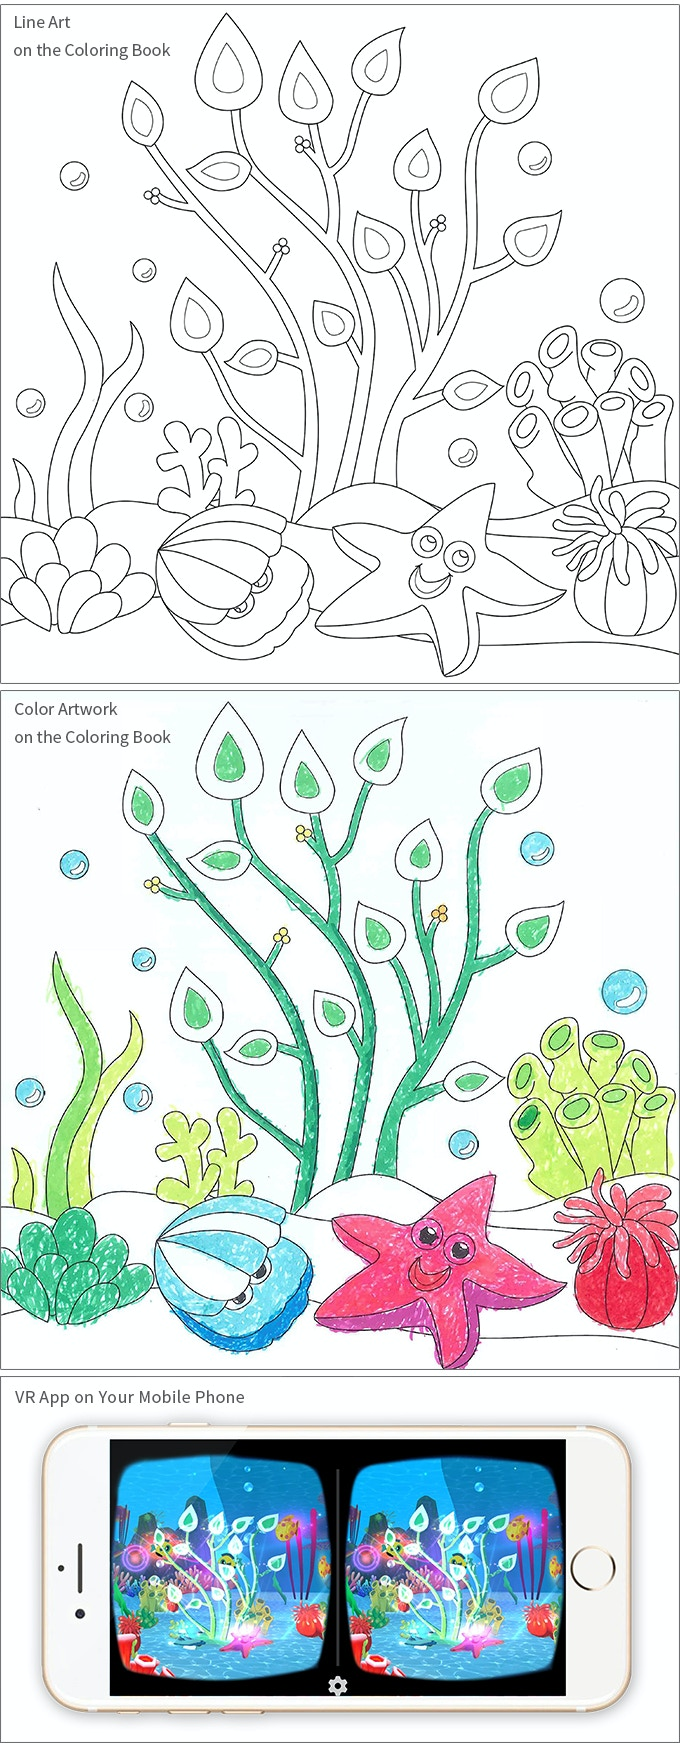 The zoology coloring book - Imagine Vr An Interactive Vr Coloring Book By If Interactive